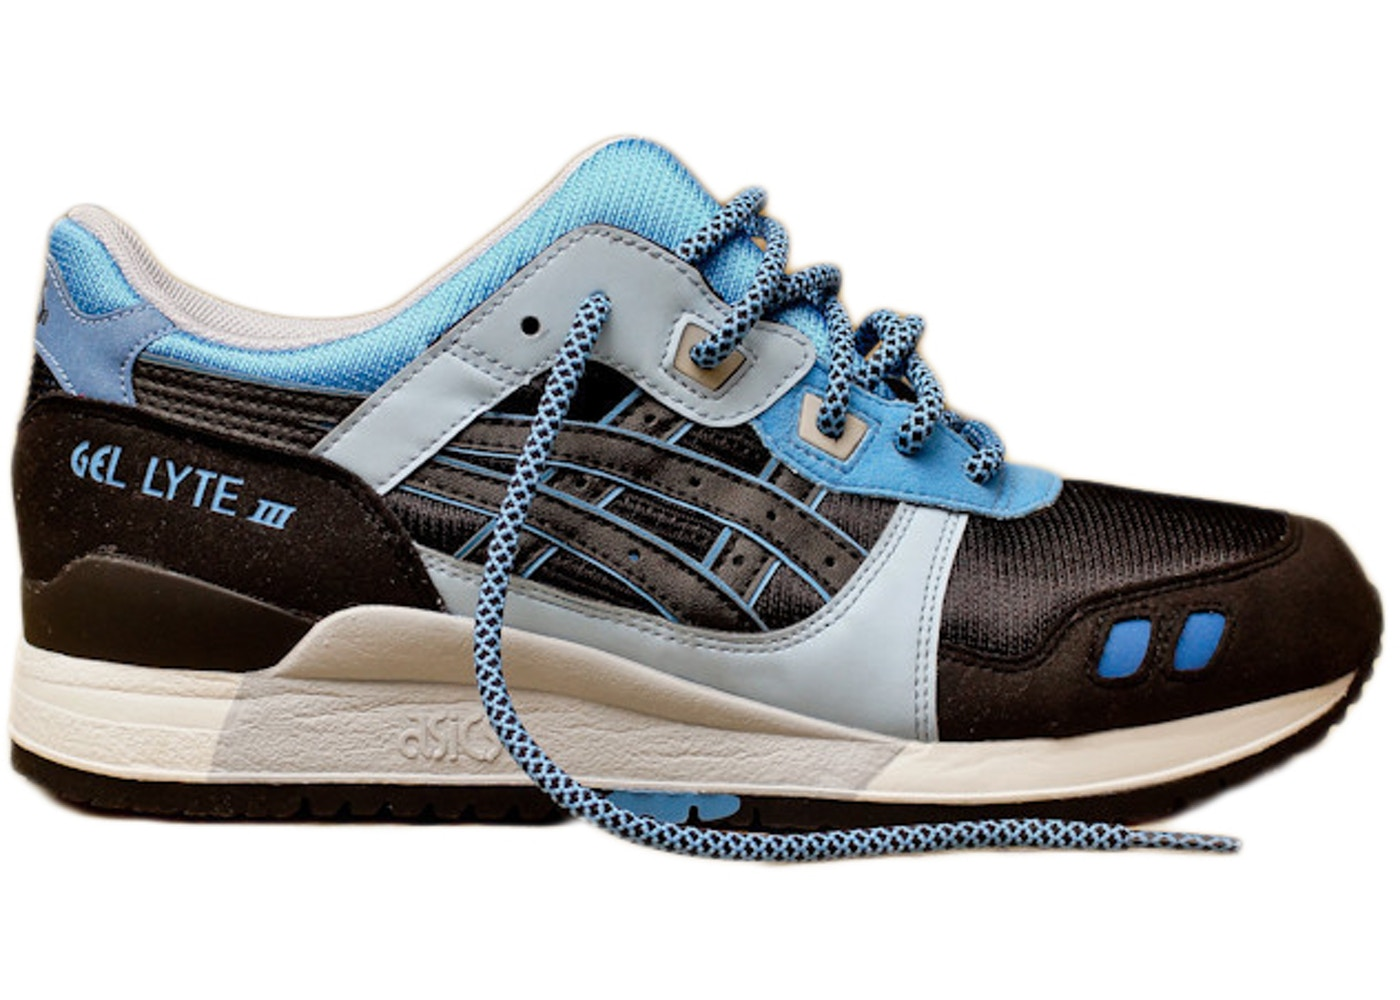 ASICS Gel-Lyte III Kithstrike Black Carolina Blue - HN538-9090 a7899d0bf